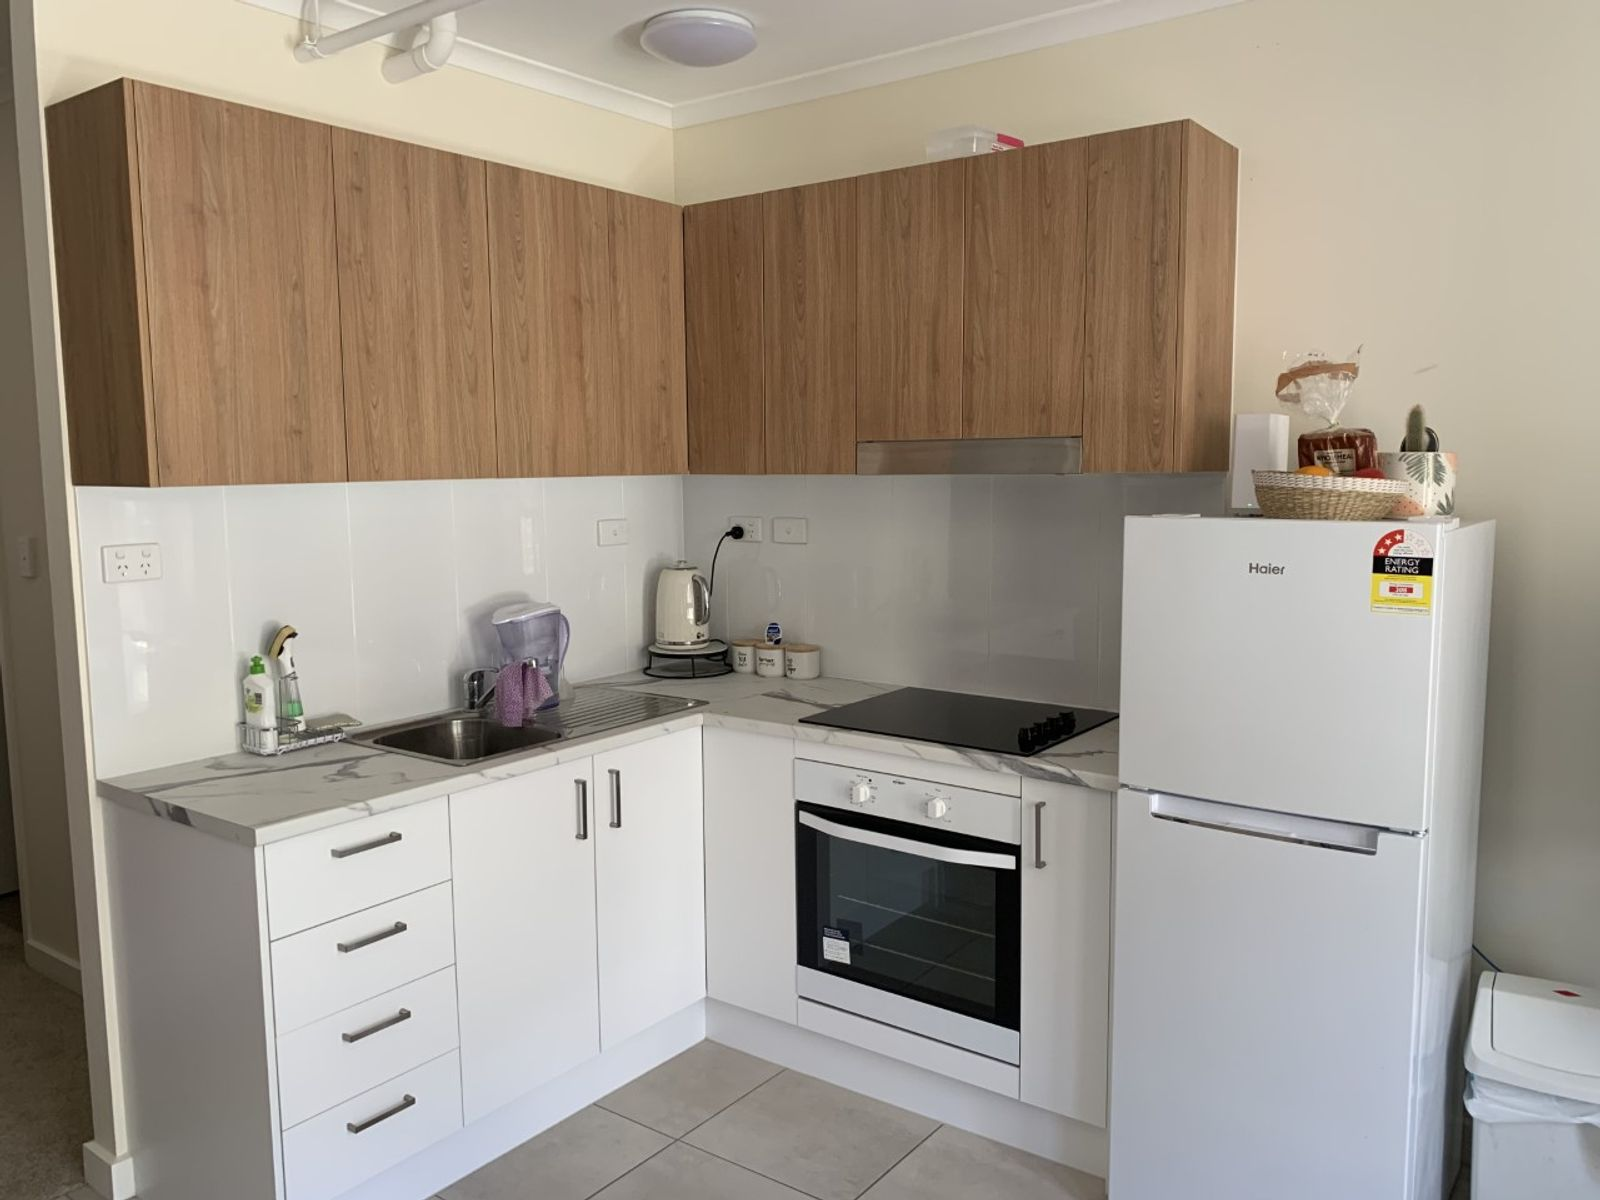 53/6 Stephens Road, Alice Springs, NT 0870